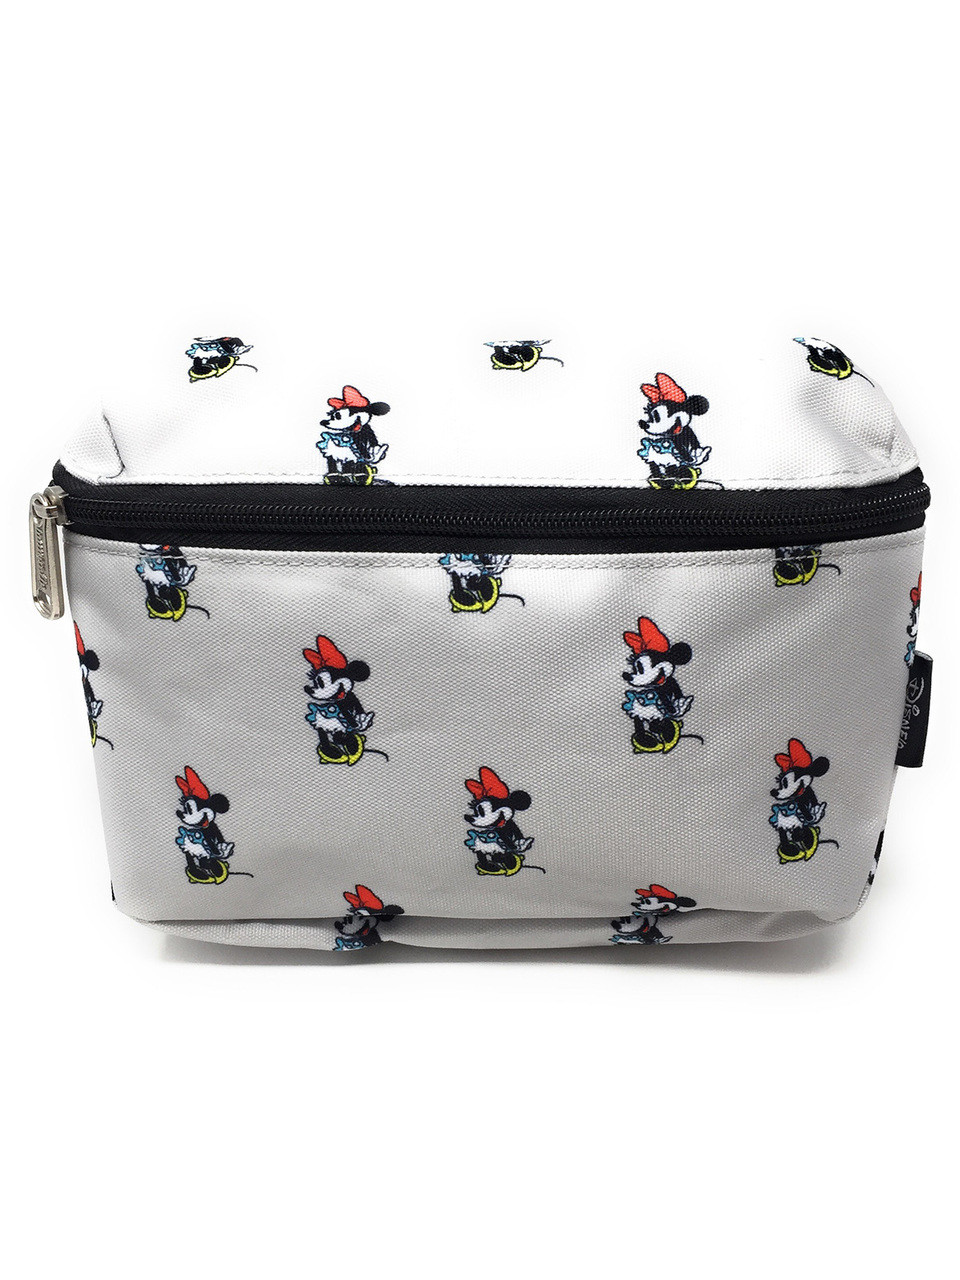 0253c5315c2 Loungefly x Disney s Minnie Mouse Printed Fanny Pack - Sidecca